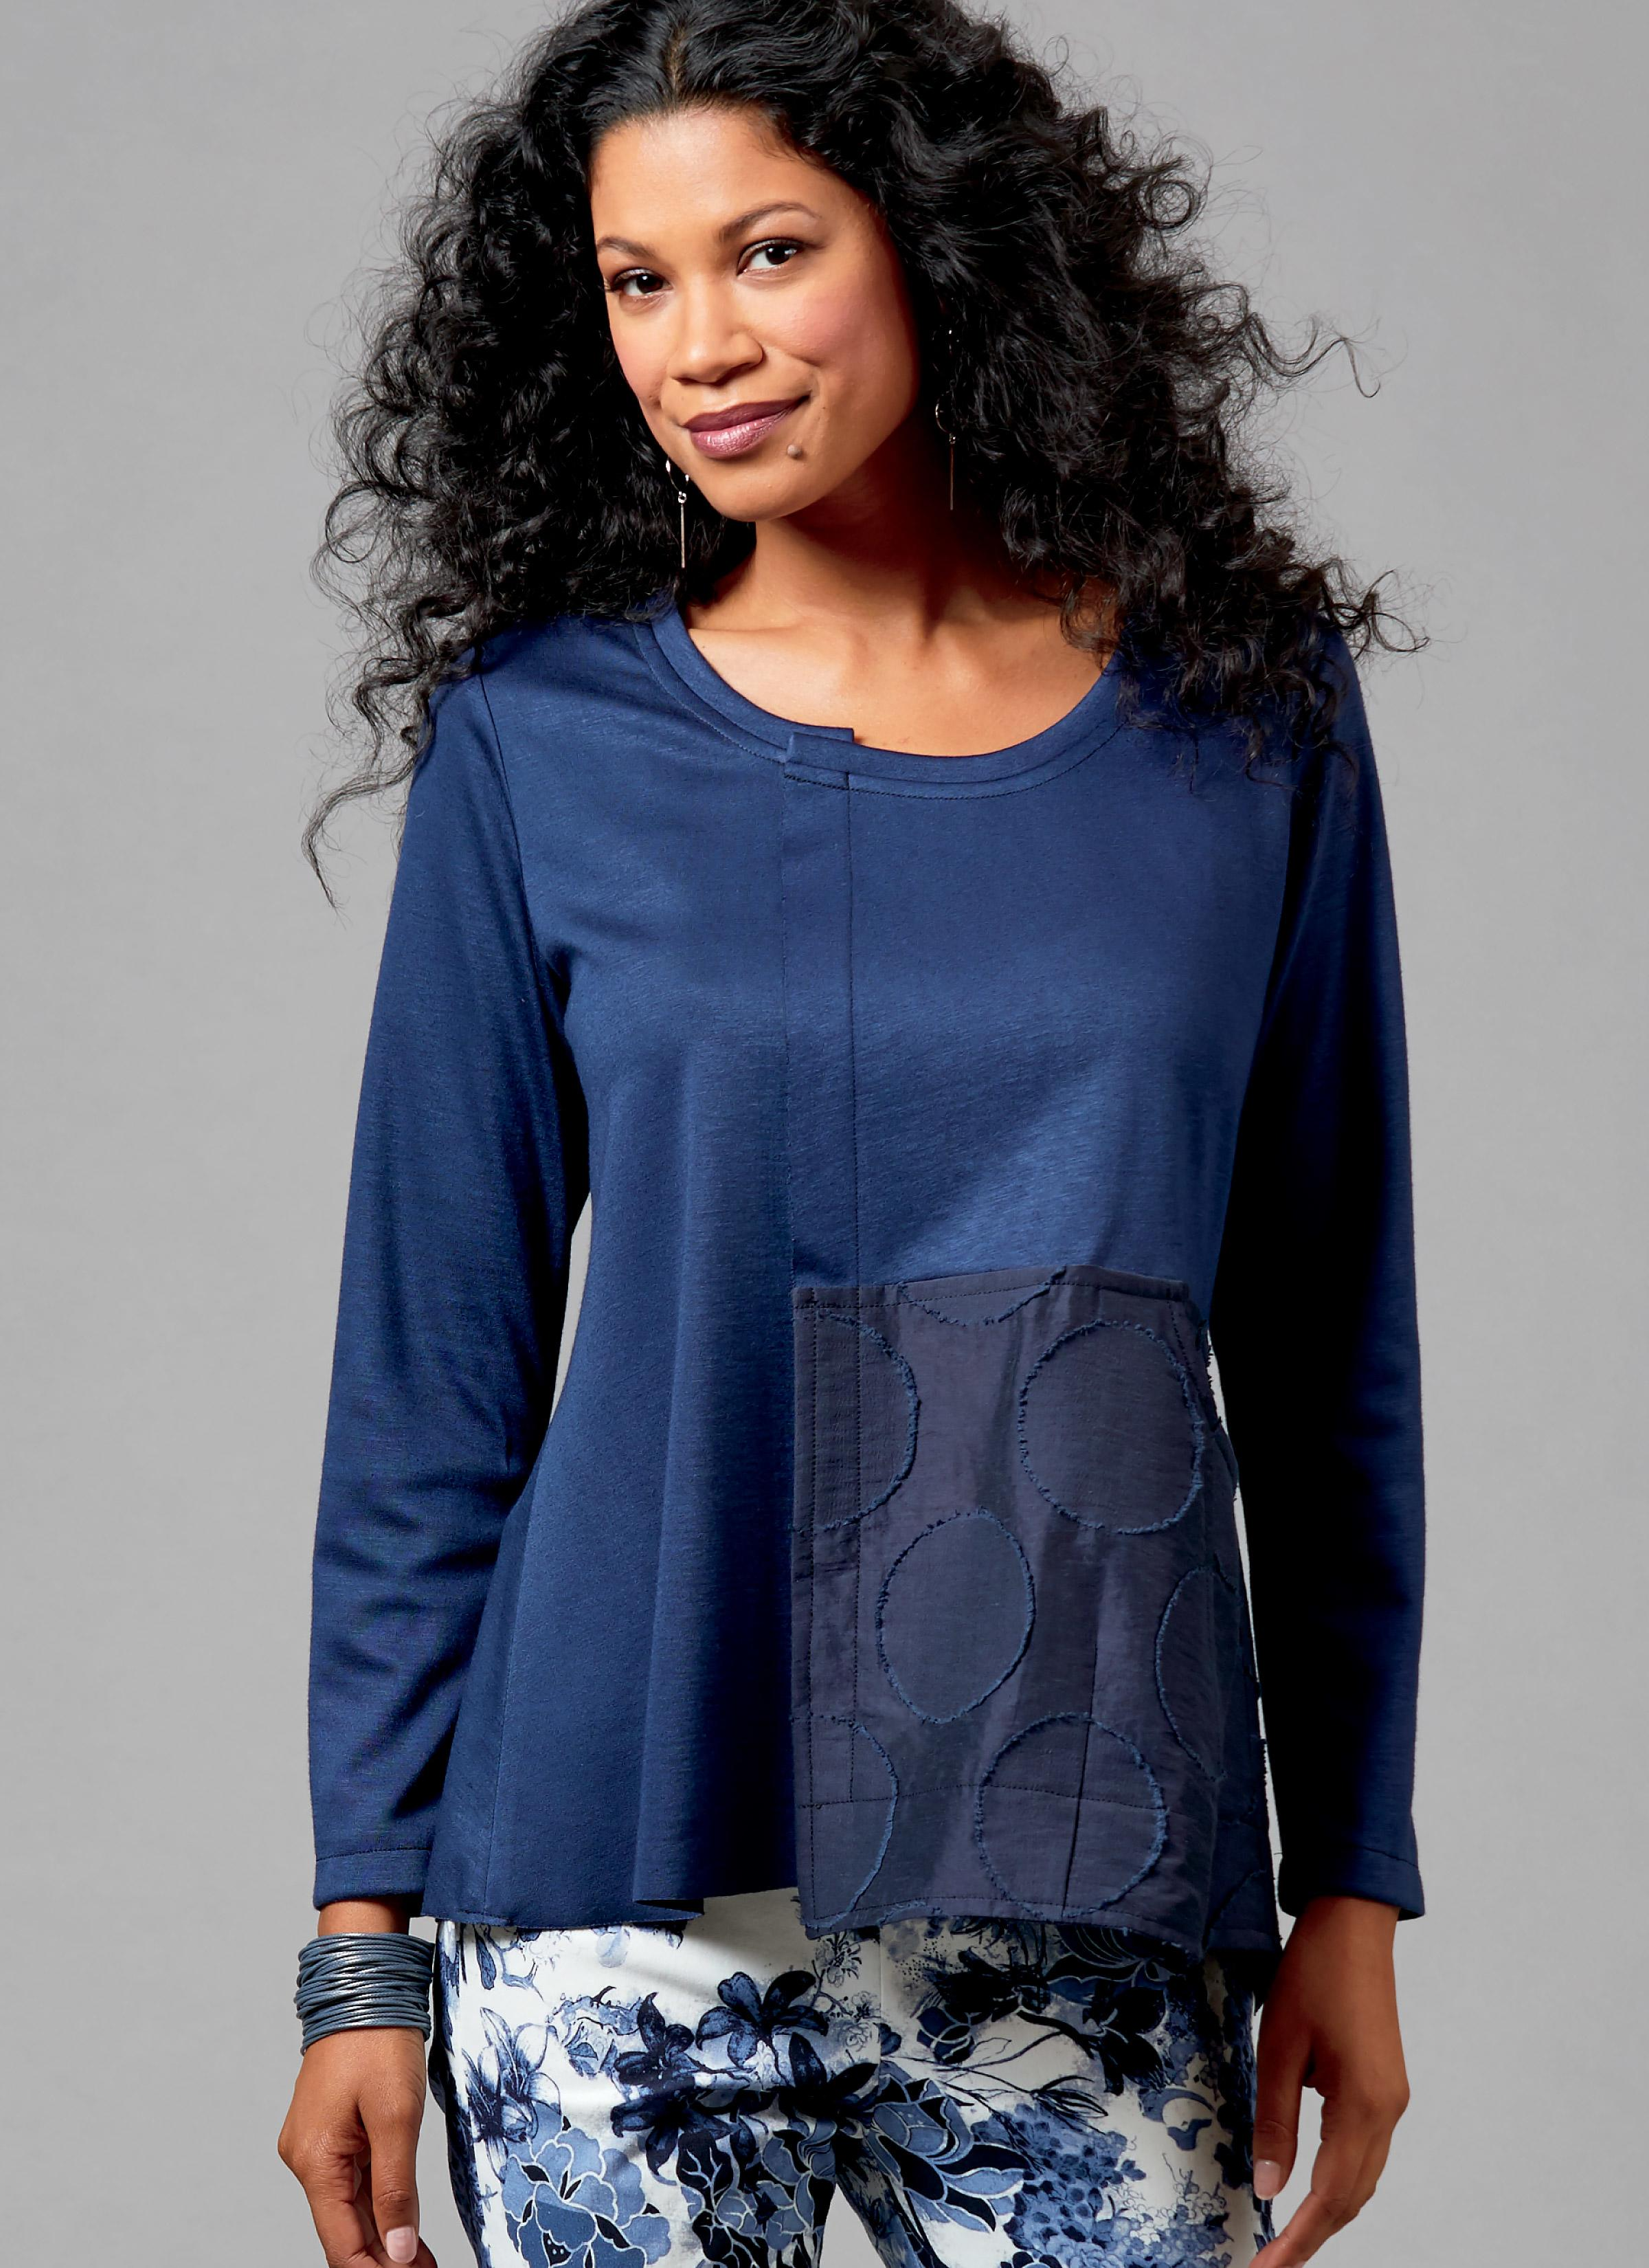 Butterick B6564 Misses' Top